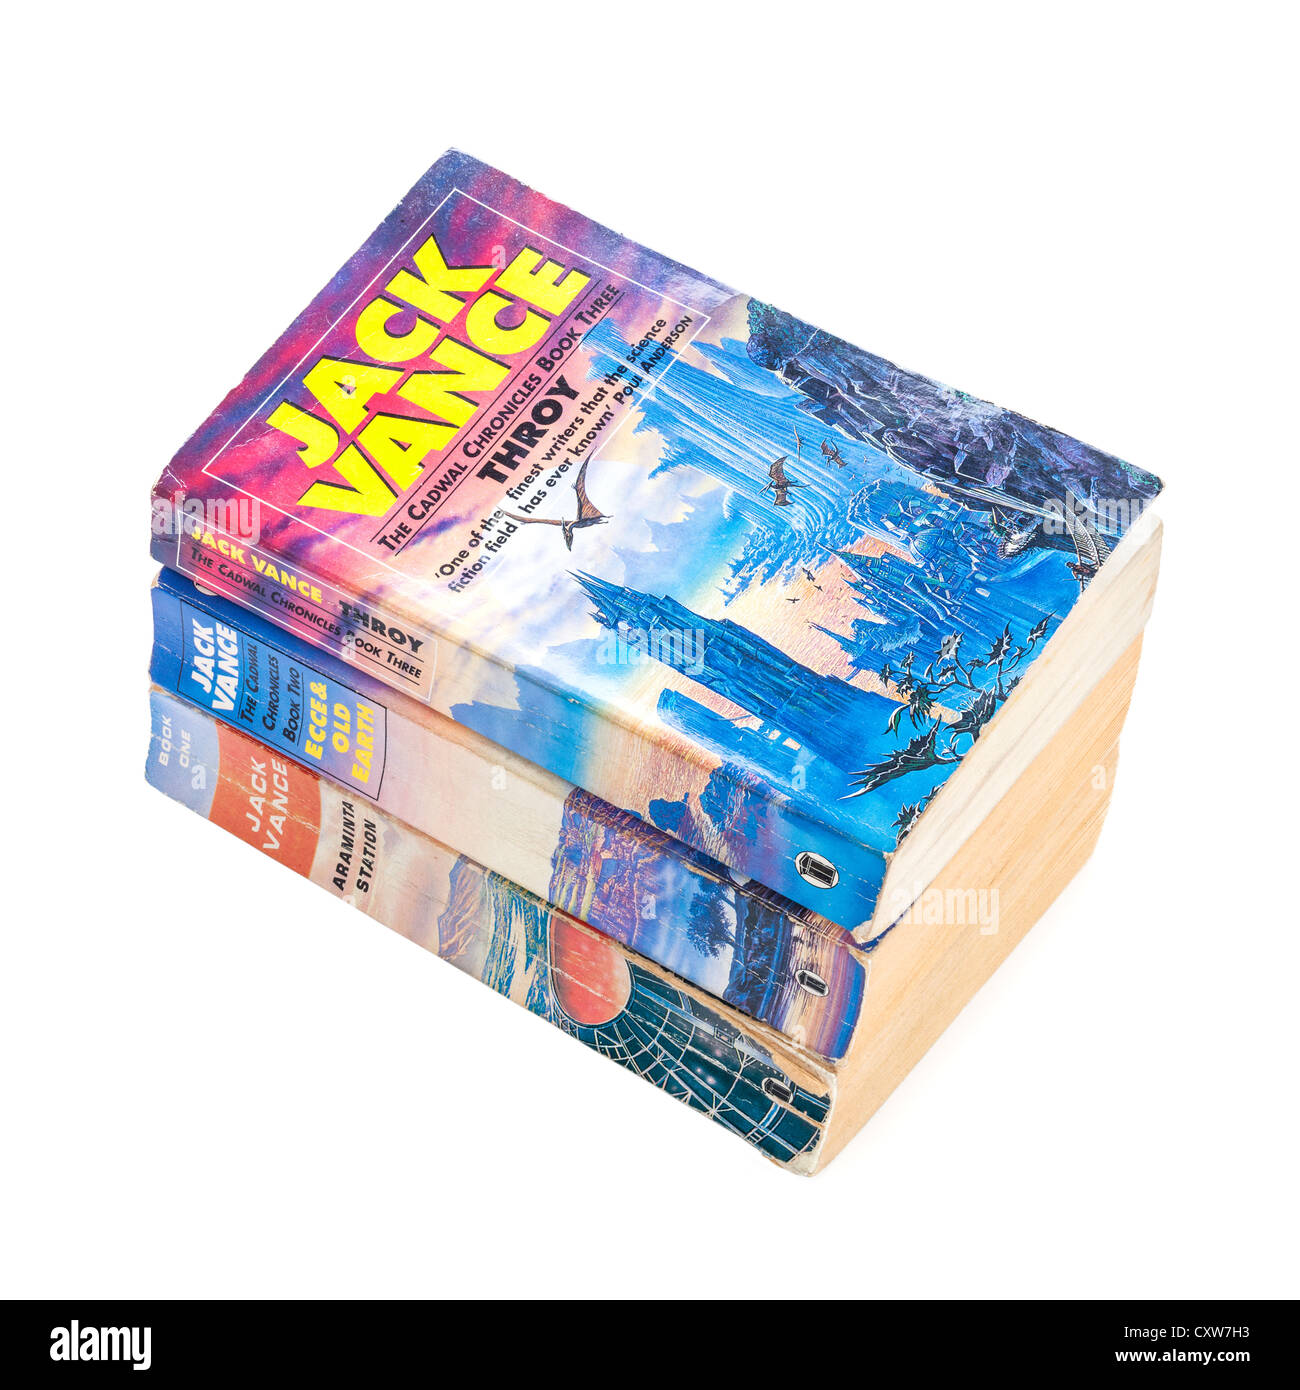 The Cadwal Chronicles trilogy by Jack Vance, stack of paperback books on white background. Focus stack, in focus Stock Photo